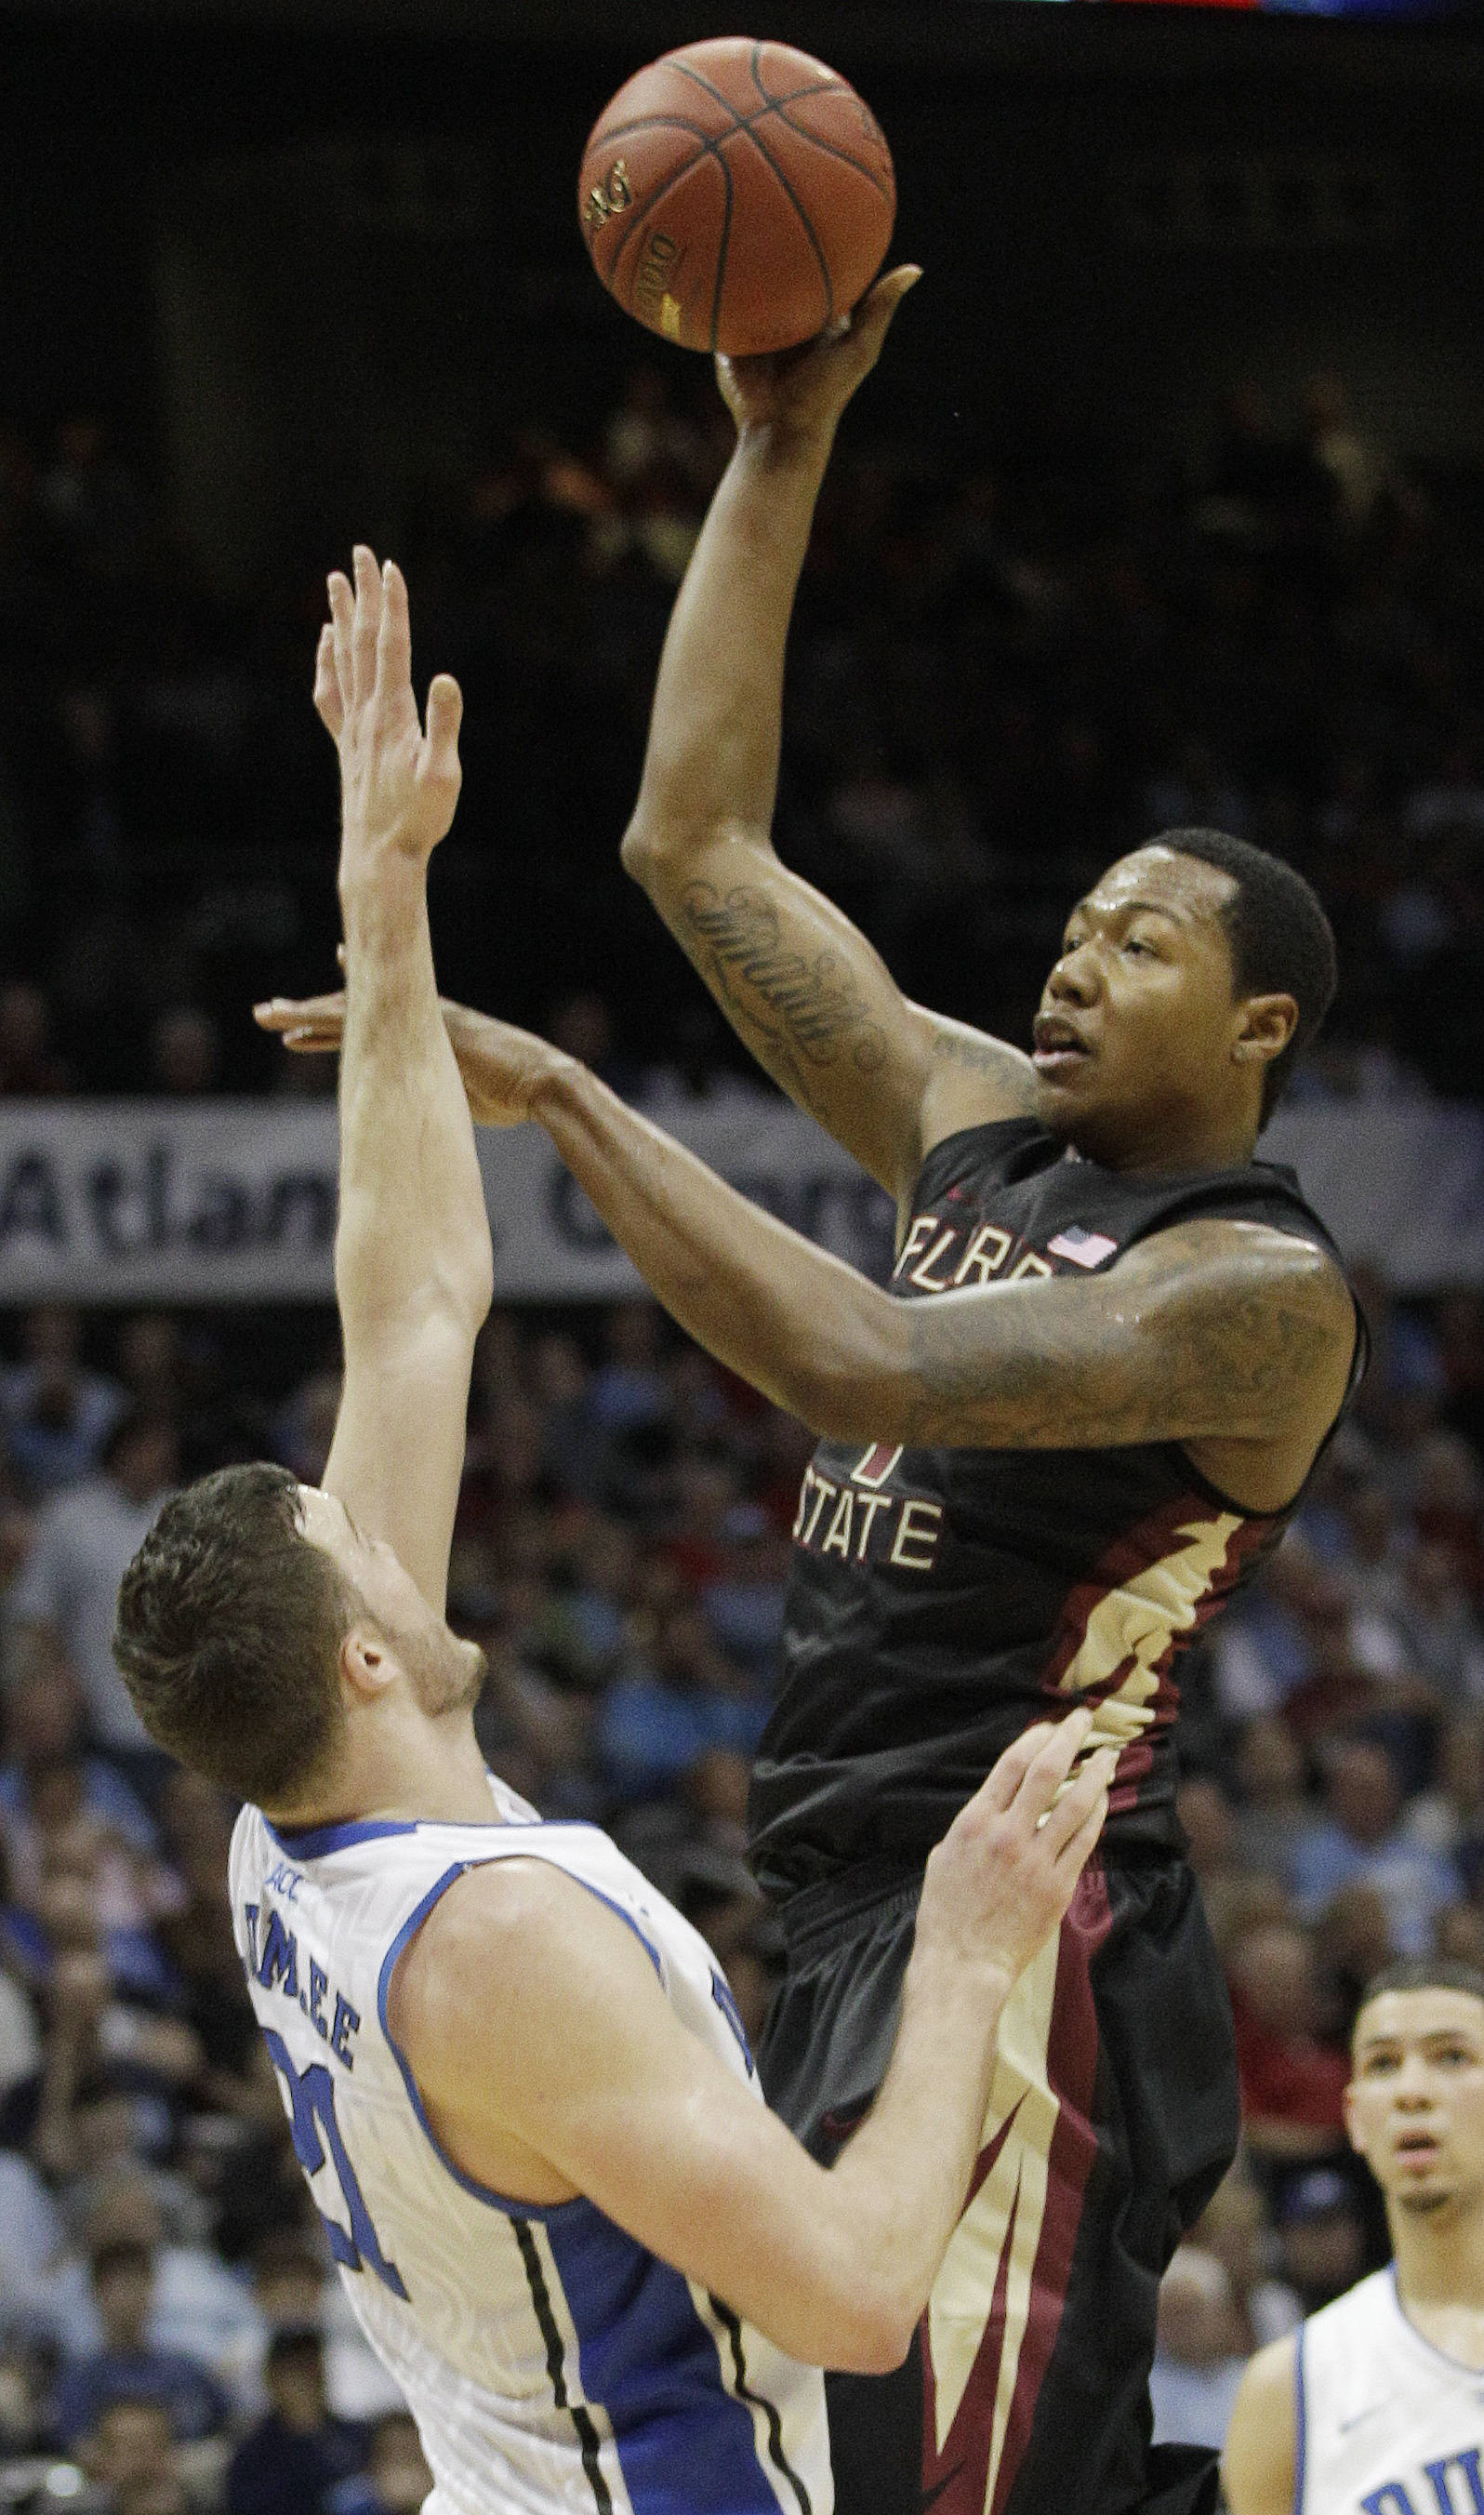 Florida State forward/center Xavier Gibson (1) shoots over Duke forward Miles Plumlee (21) during the first half of an NCAA college basketball game in the semifinals of the Atlantic Coast Conference tournament, Saturday, March 10, 2012, in Atlanta. (AP Photo/Chuck Burton)